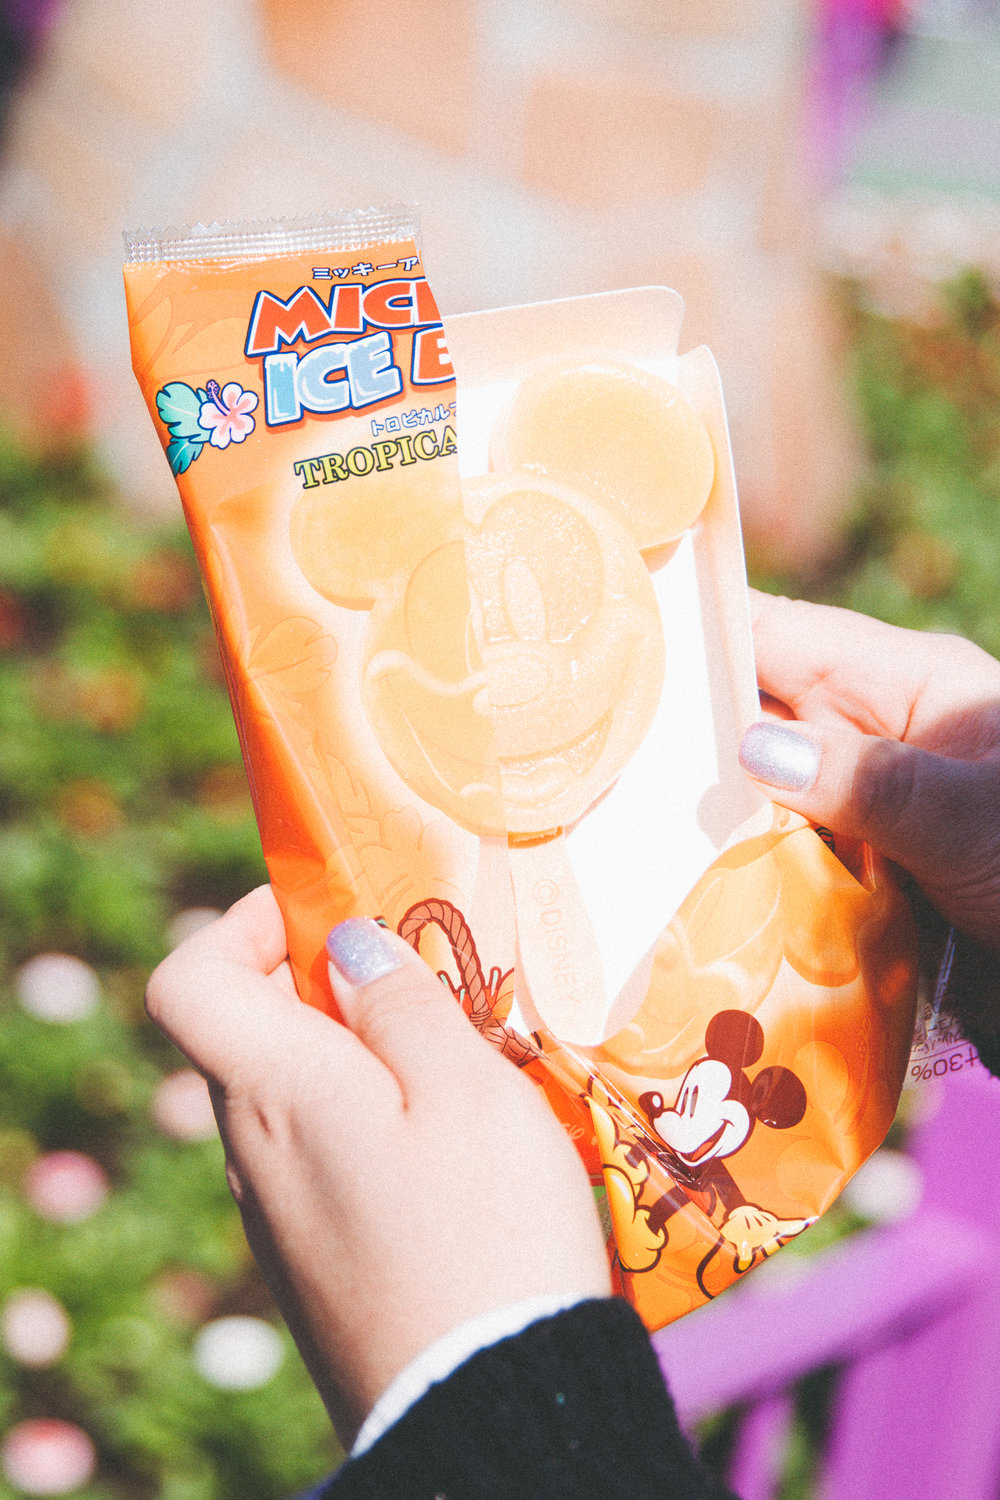 Mickey Ice Bar Tropical Fruit (¥310) Too good to pass up even in cold weather, this ice bar is refreshing and packed with flavor.